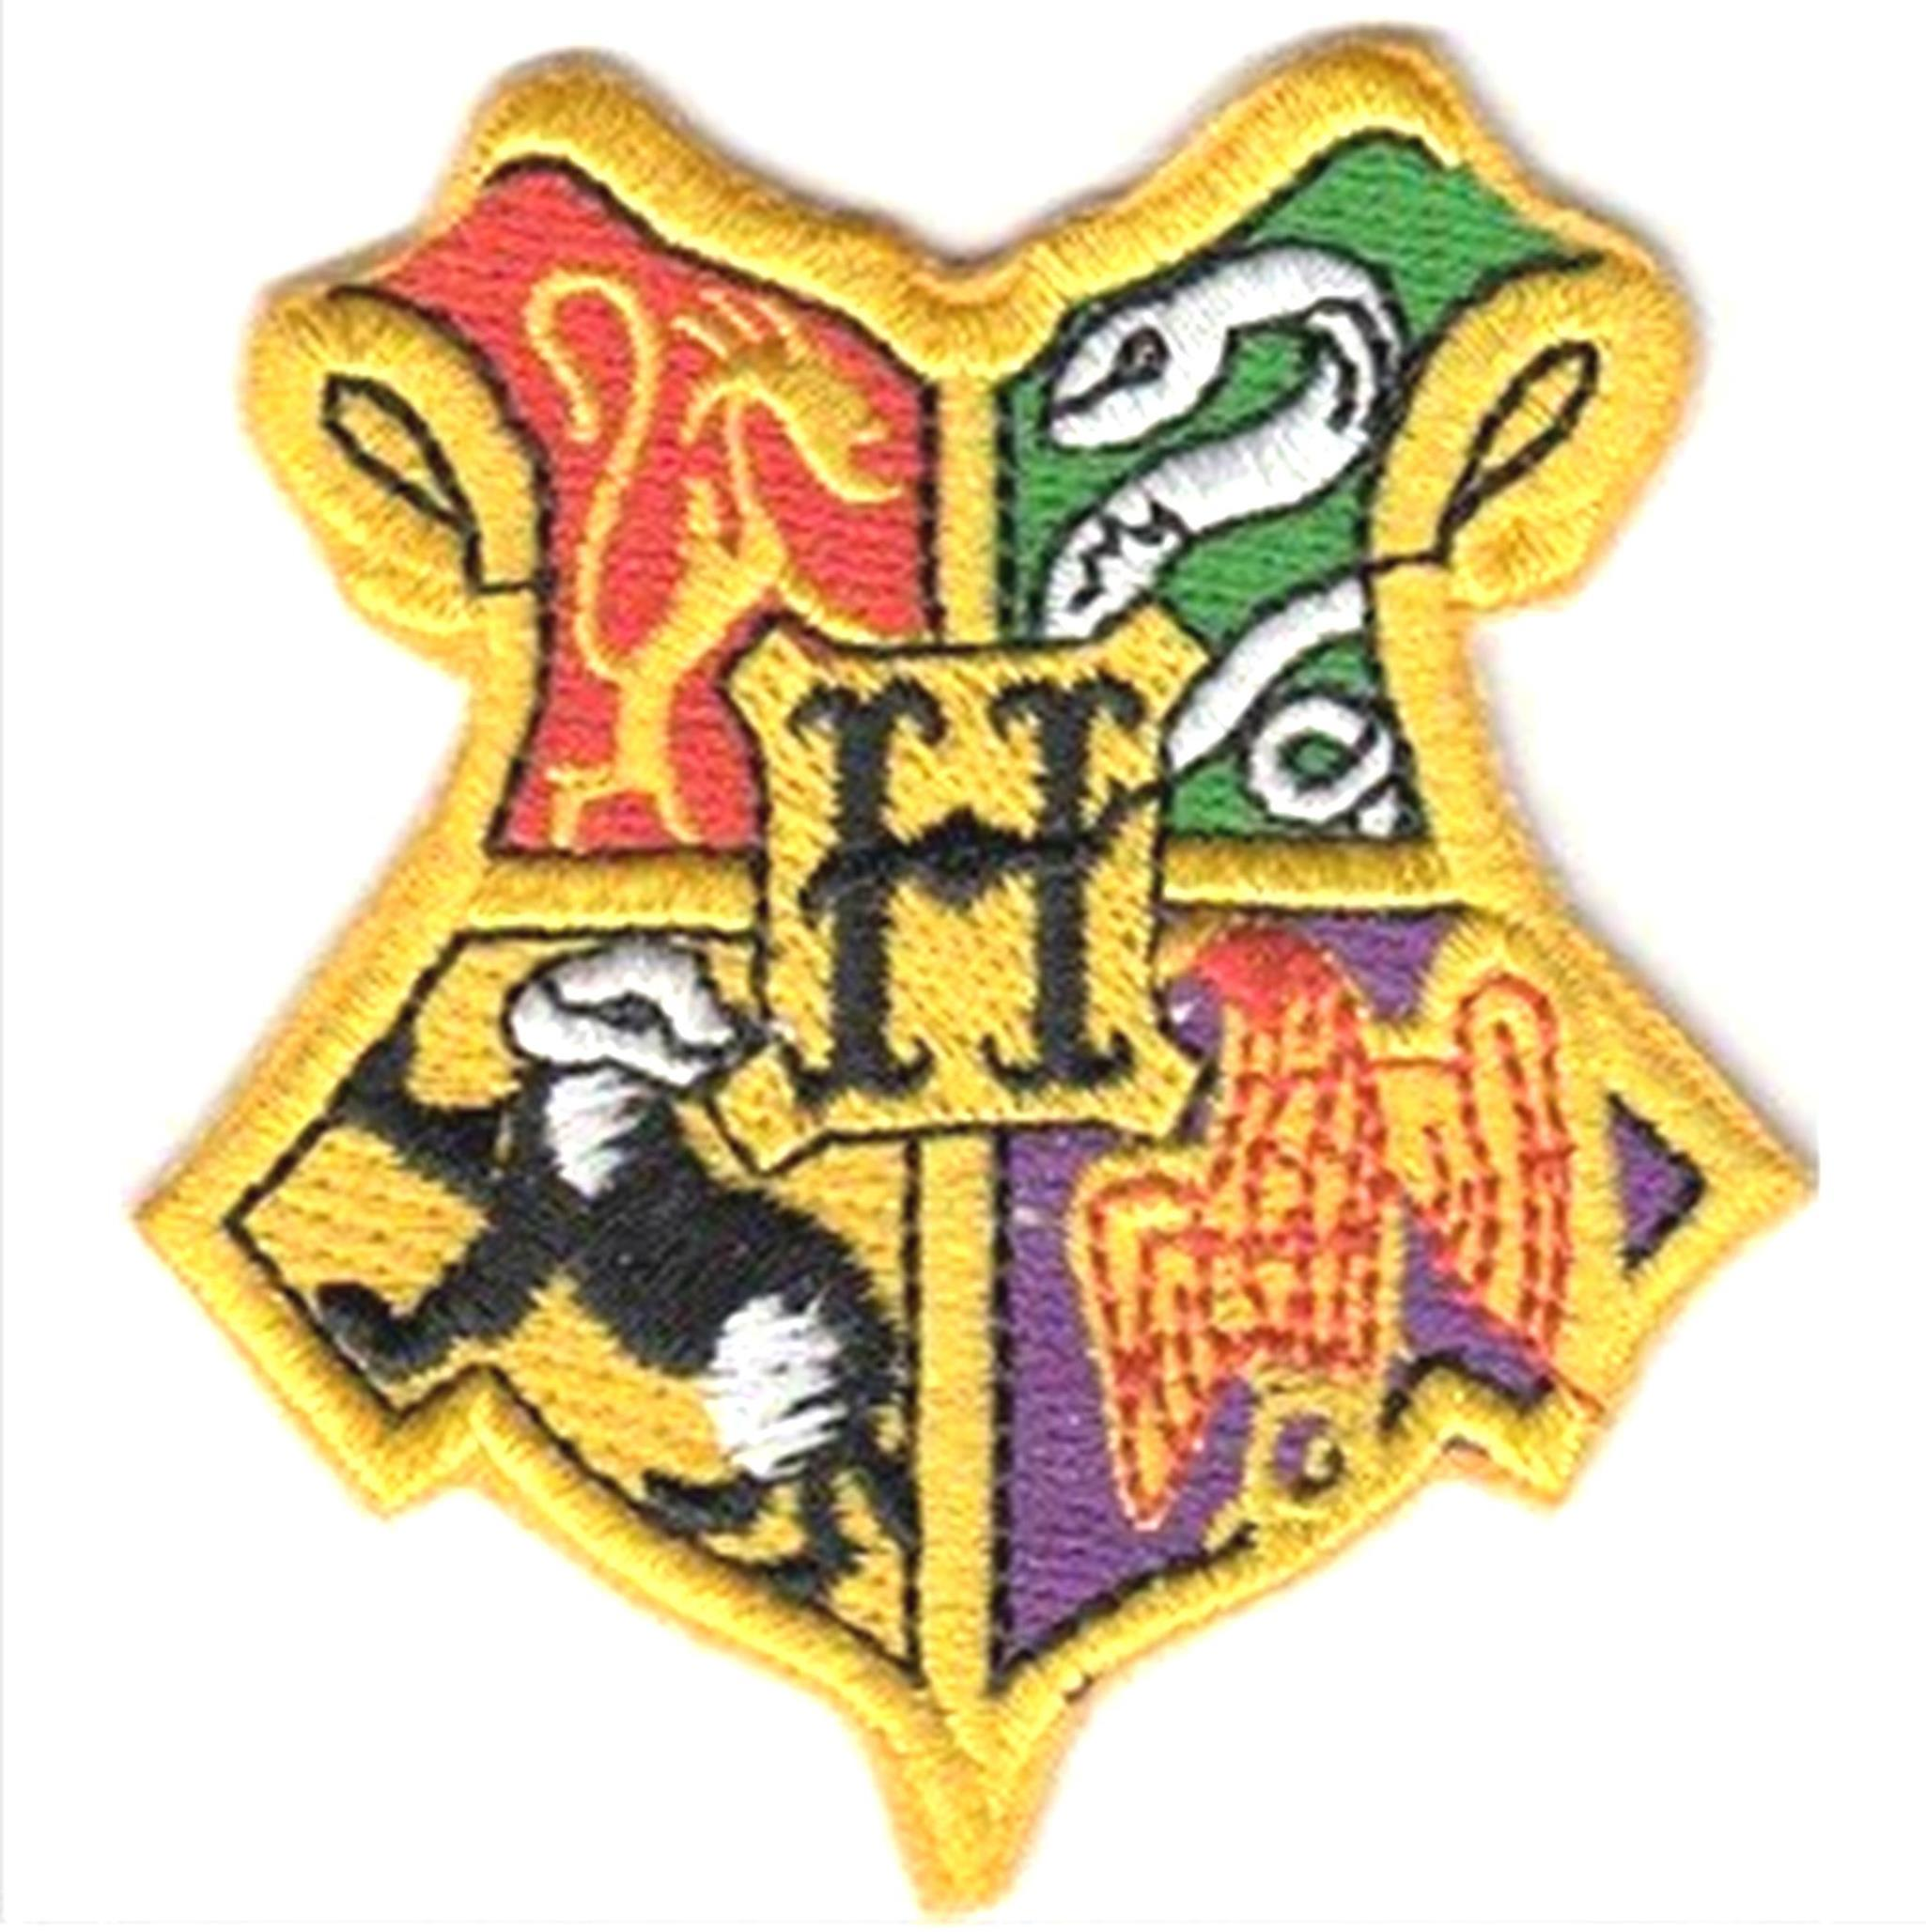 "Superheroes Harry Potter Gryffindor House Crest Hogwart 2.5"" Tall X 2.3"" Wide Embroidered Iron/Sew-on Applique Patch"